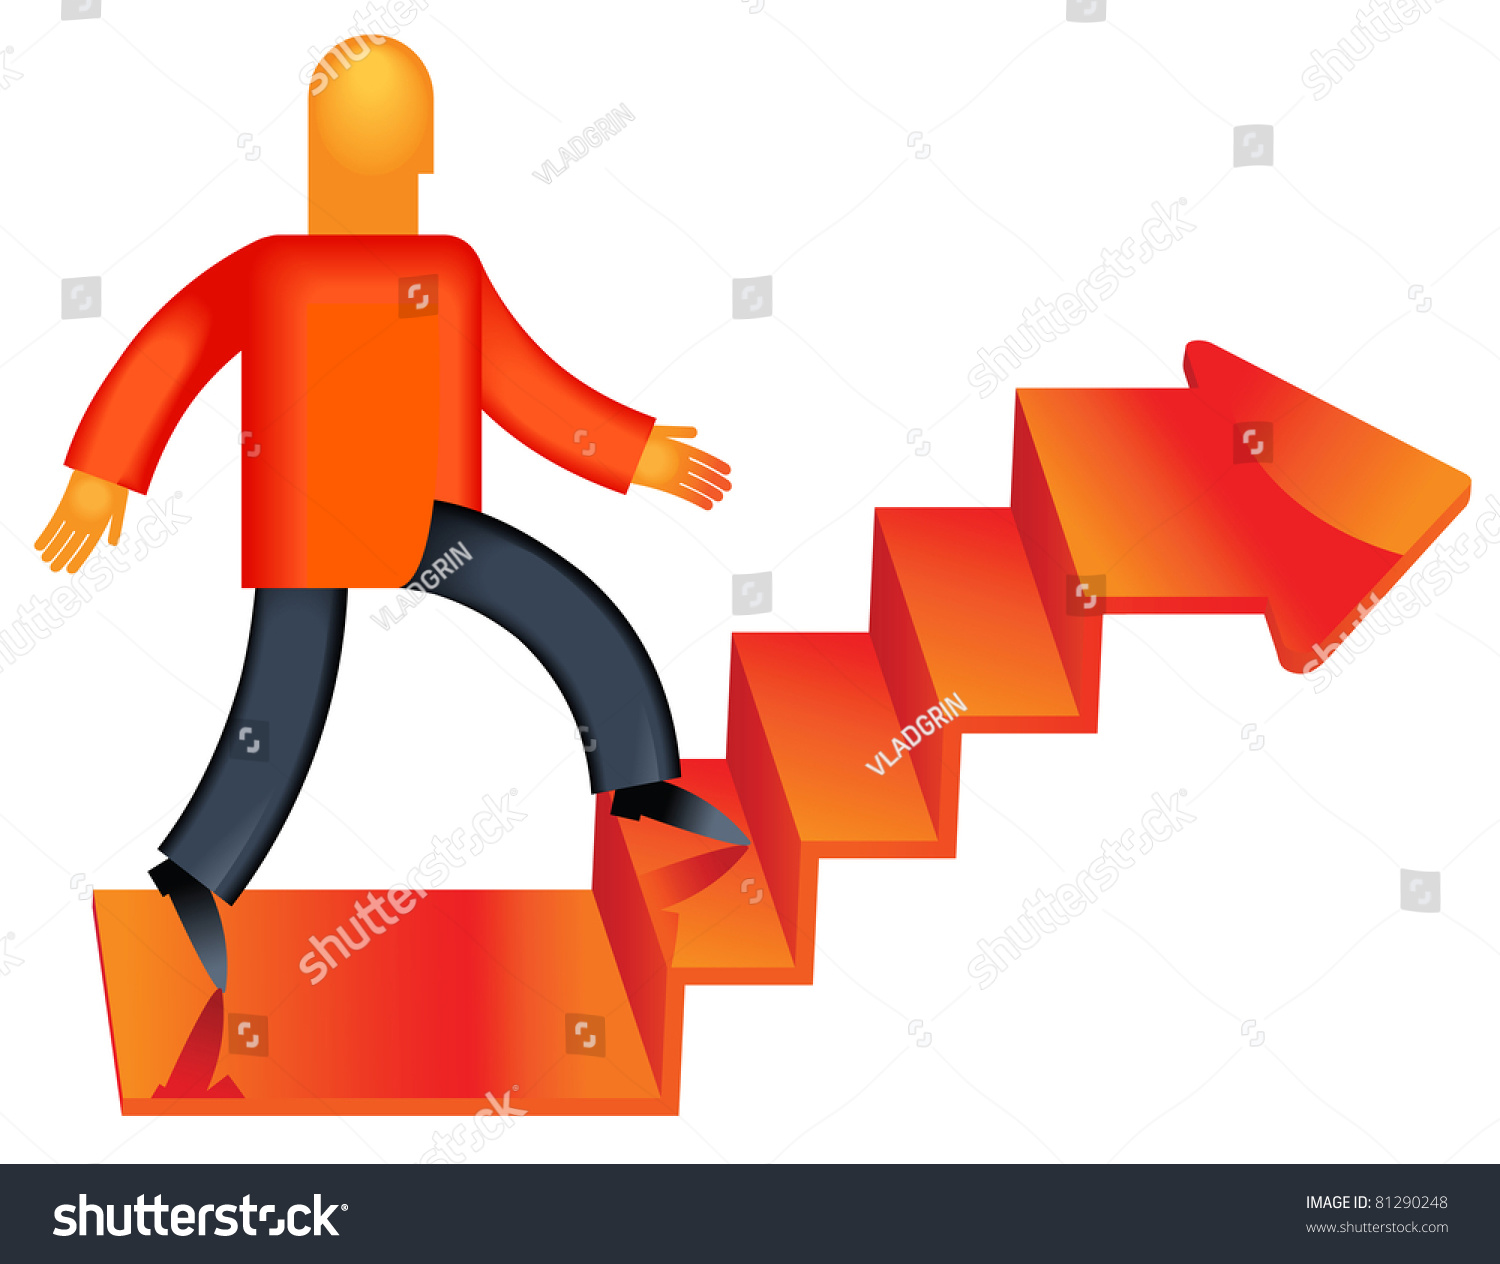 move forward professional innovations career growth stock vector move forward professional innovations career growth